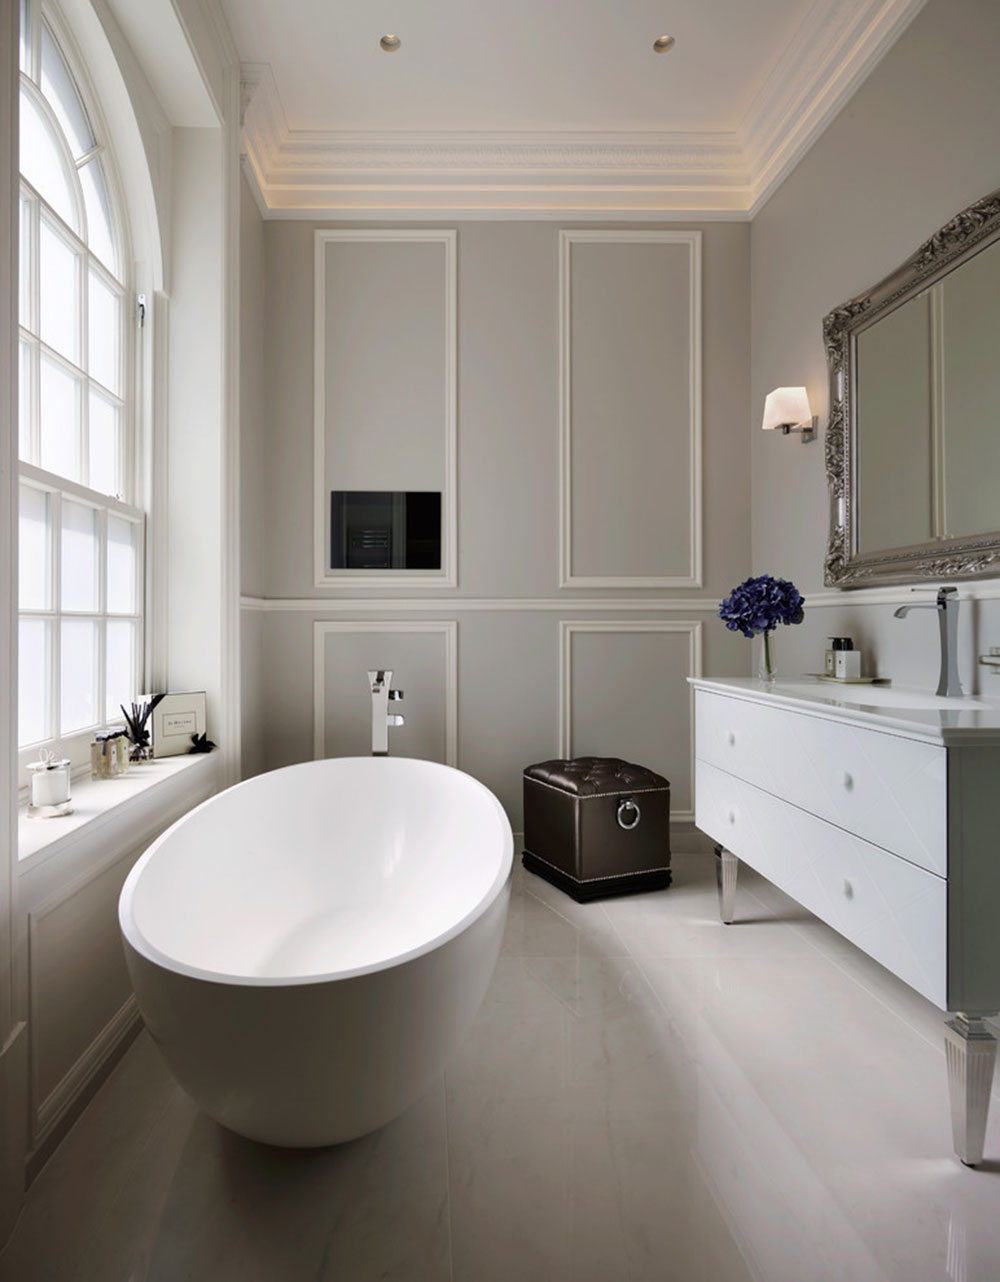 Popular bathroom paint colors - Fresh And Popular Bathroom Color Ideas4 Fresh And Popular Bathroom Color